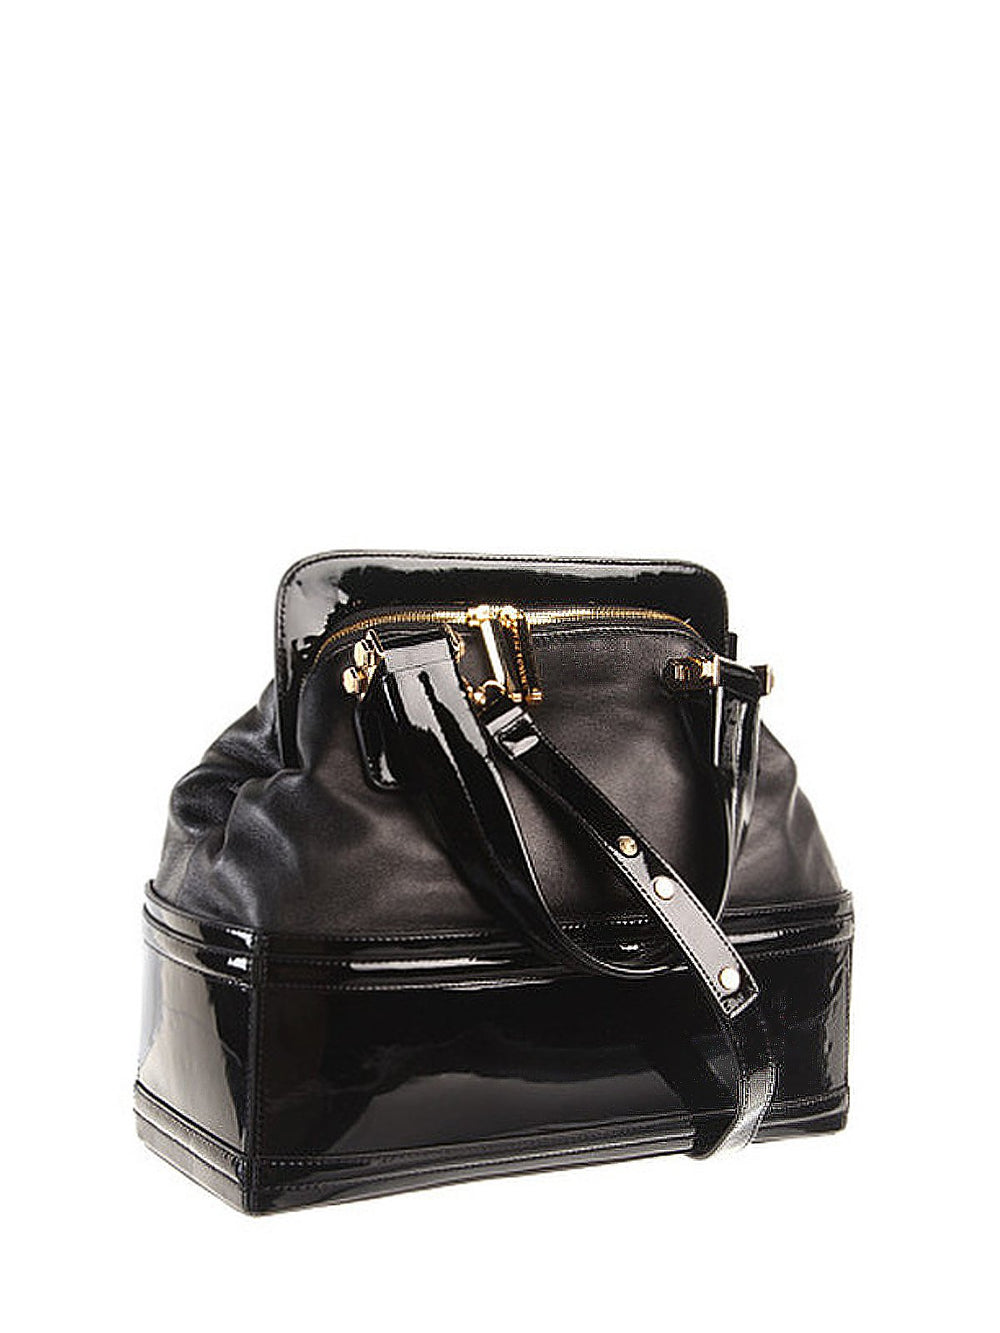 AVA Box Dome Satchel, Z SPOKE BY ZAC POSEN - elilhaam.com